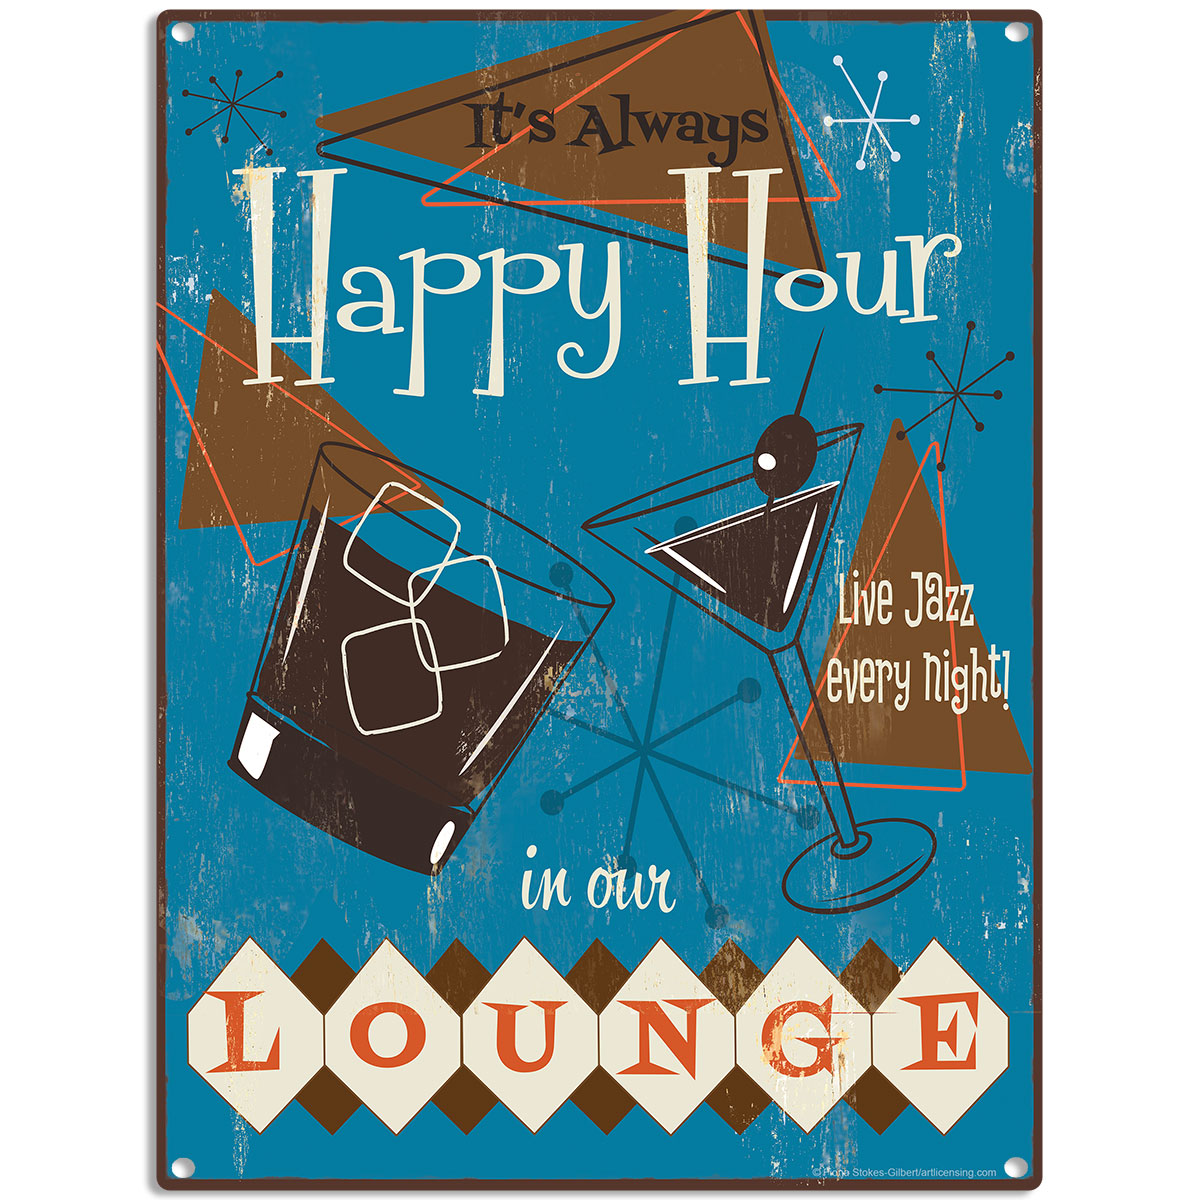 Happy Hour Lounge 50s Style Populuxe Metal Sign Bar Man Cave Decor ...